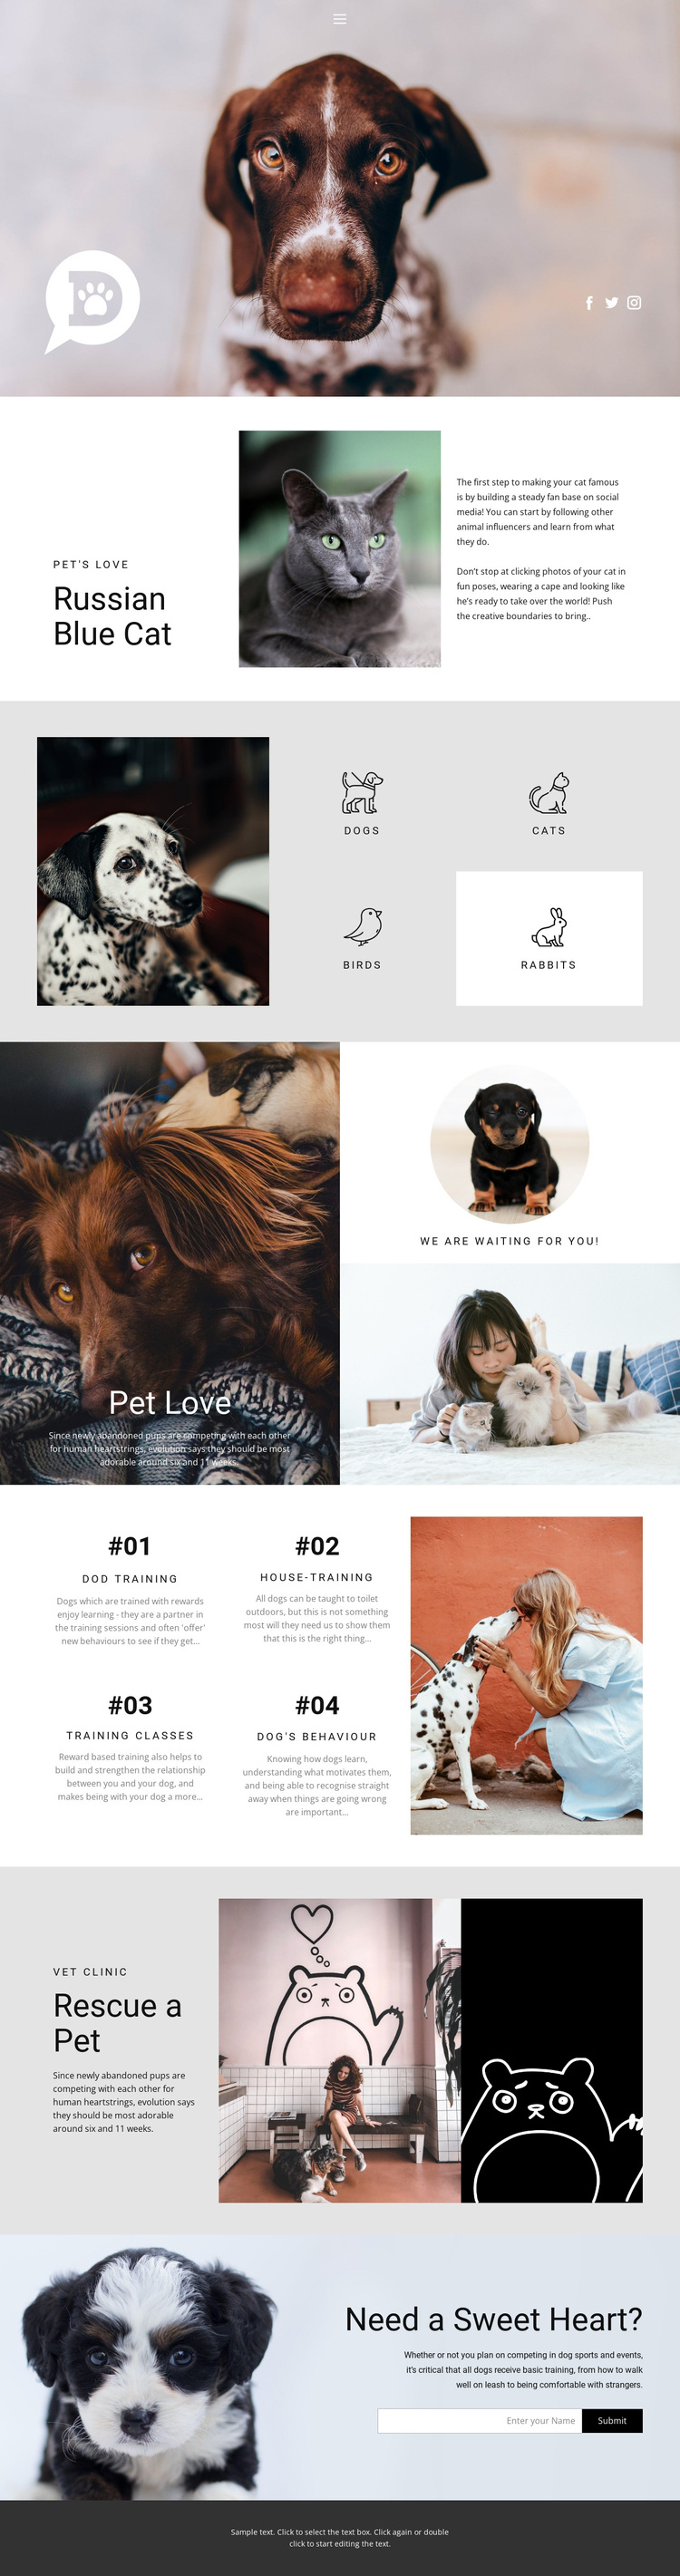 Care for pets and animals Joomla Page Builder